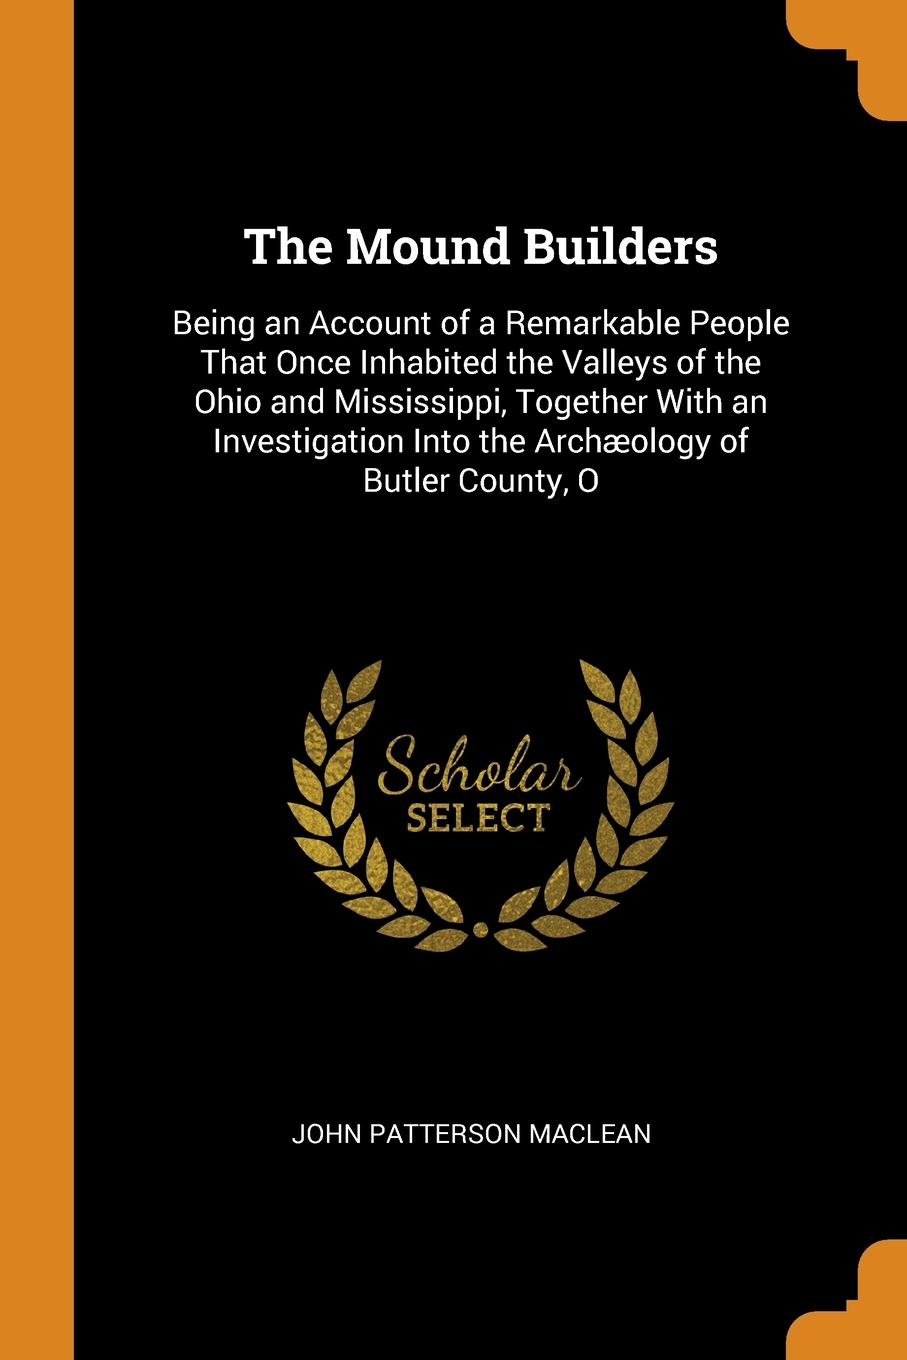 John Patterson MacLean The Mound Builders. Being an Account of a Remarkable People That Once Inhabited the Valleys of the Ohio and Mississippi, Together With an Investigation Into the Archaeology of Butler County, O